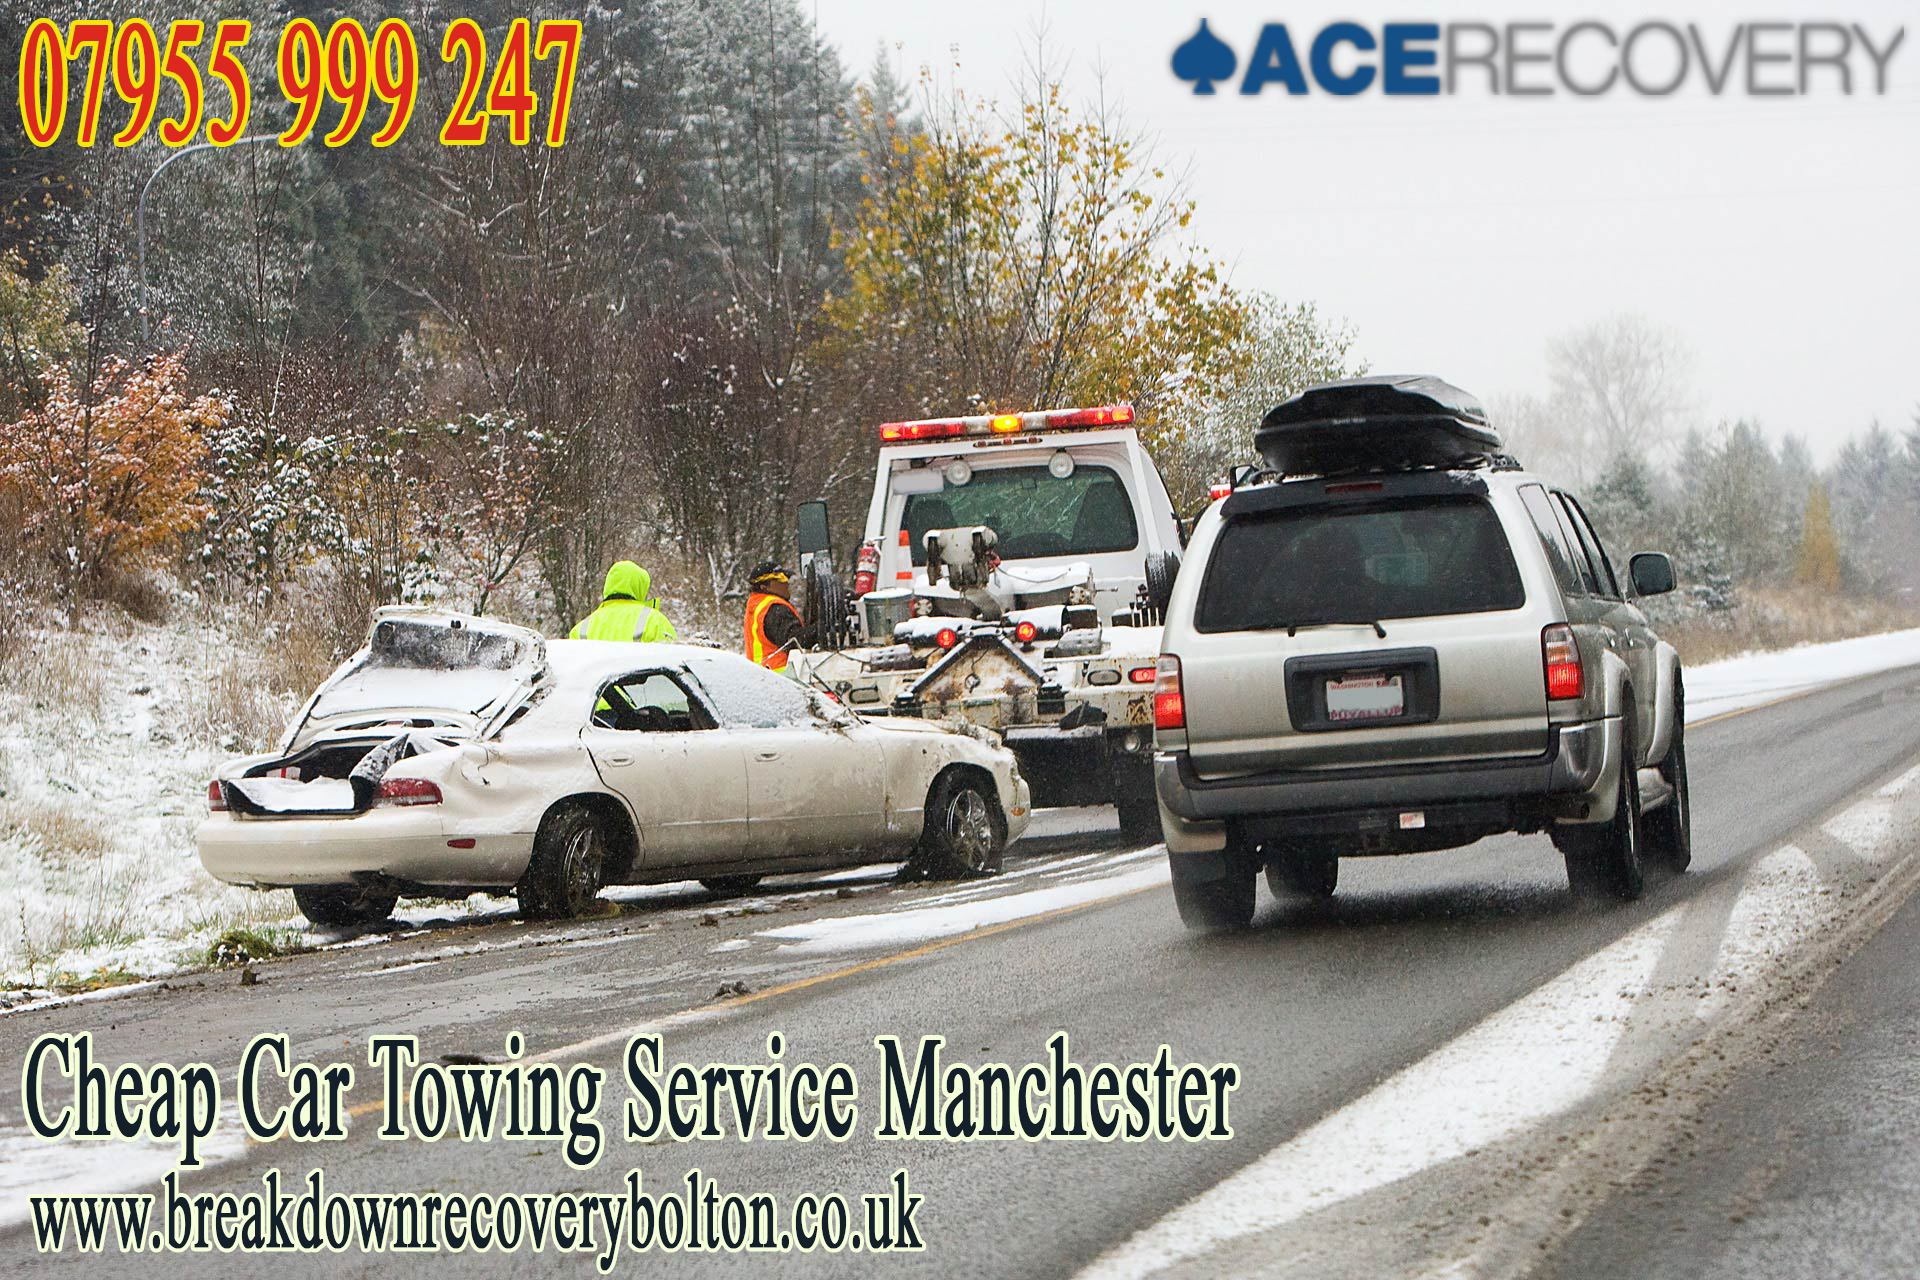 Precautions against Car Breakdown and the Cheap Recovery Service Manchester